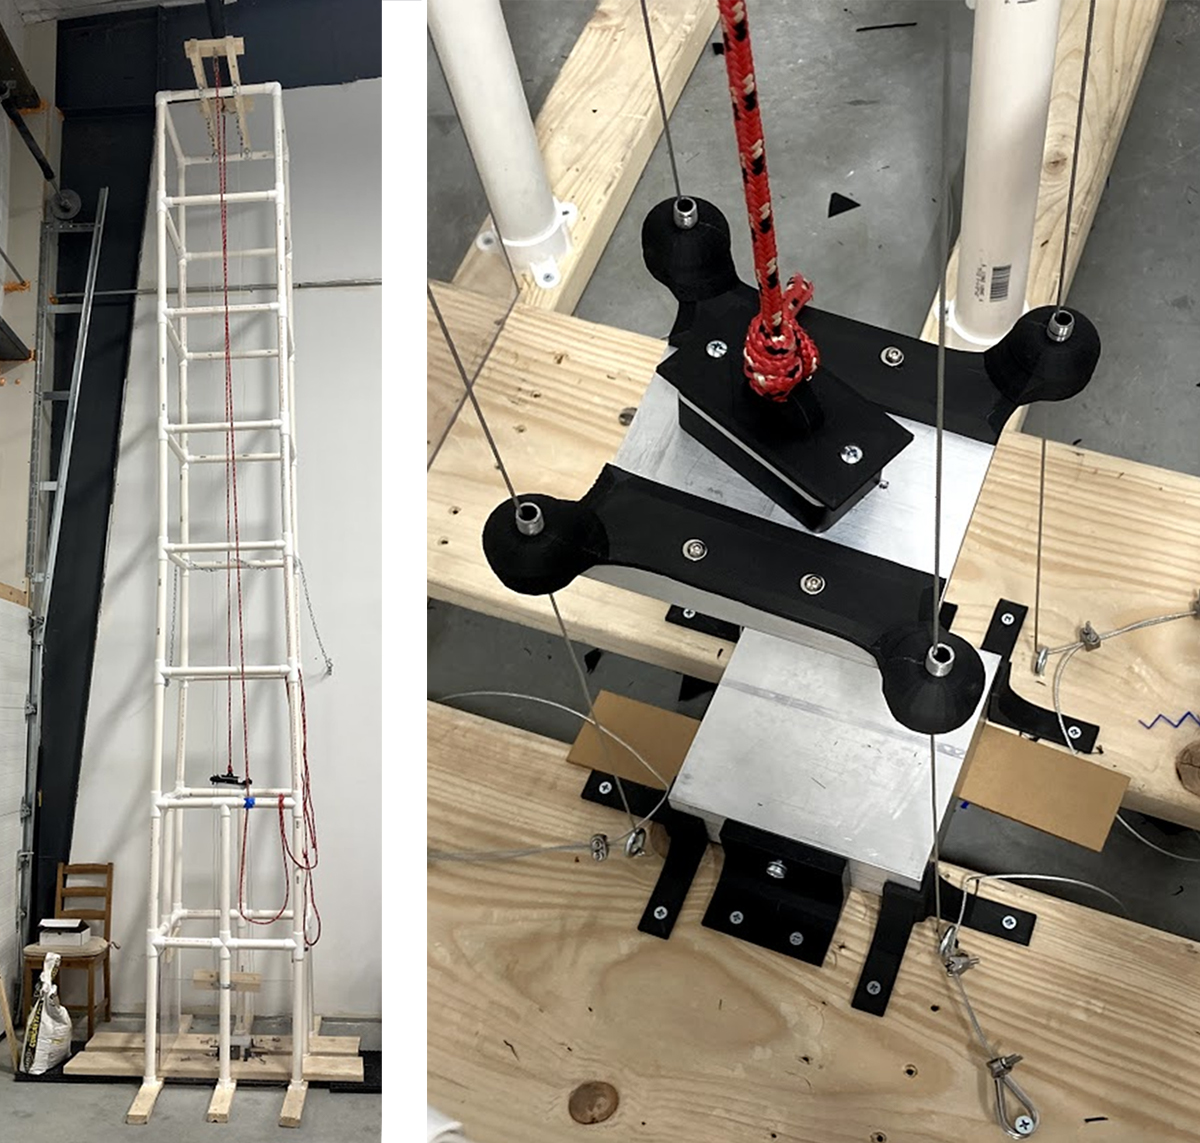 two photos: the drop tower completed and standing upright and a close up of the pleten